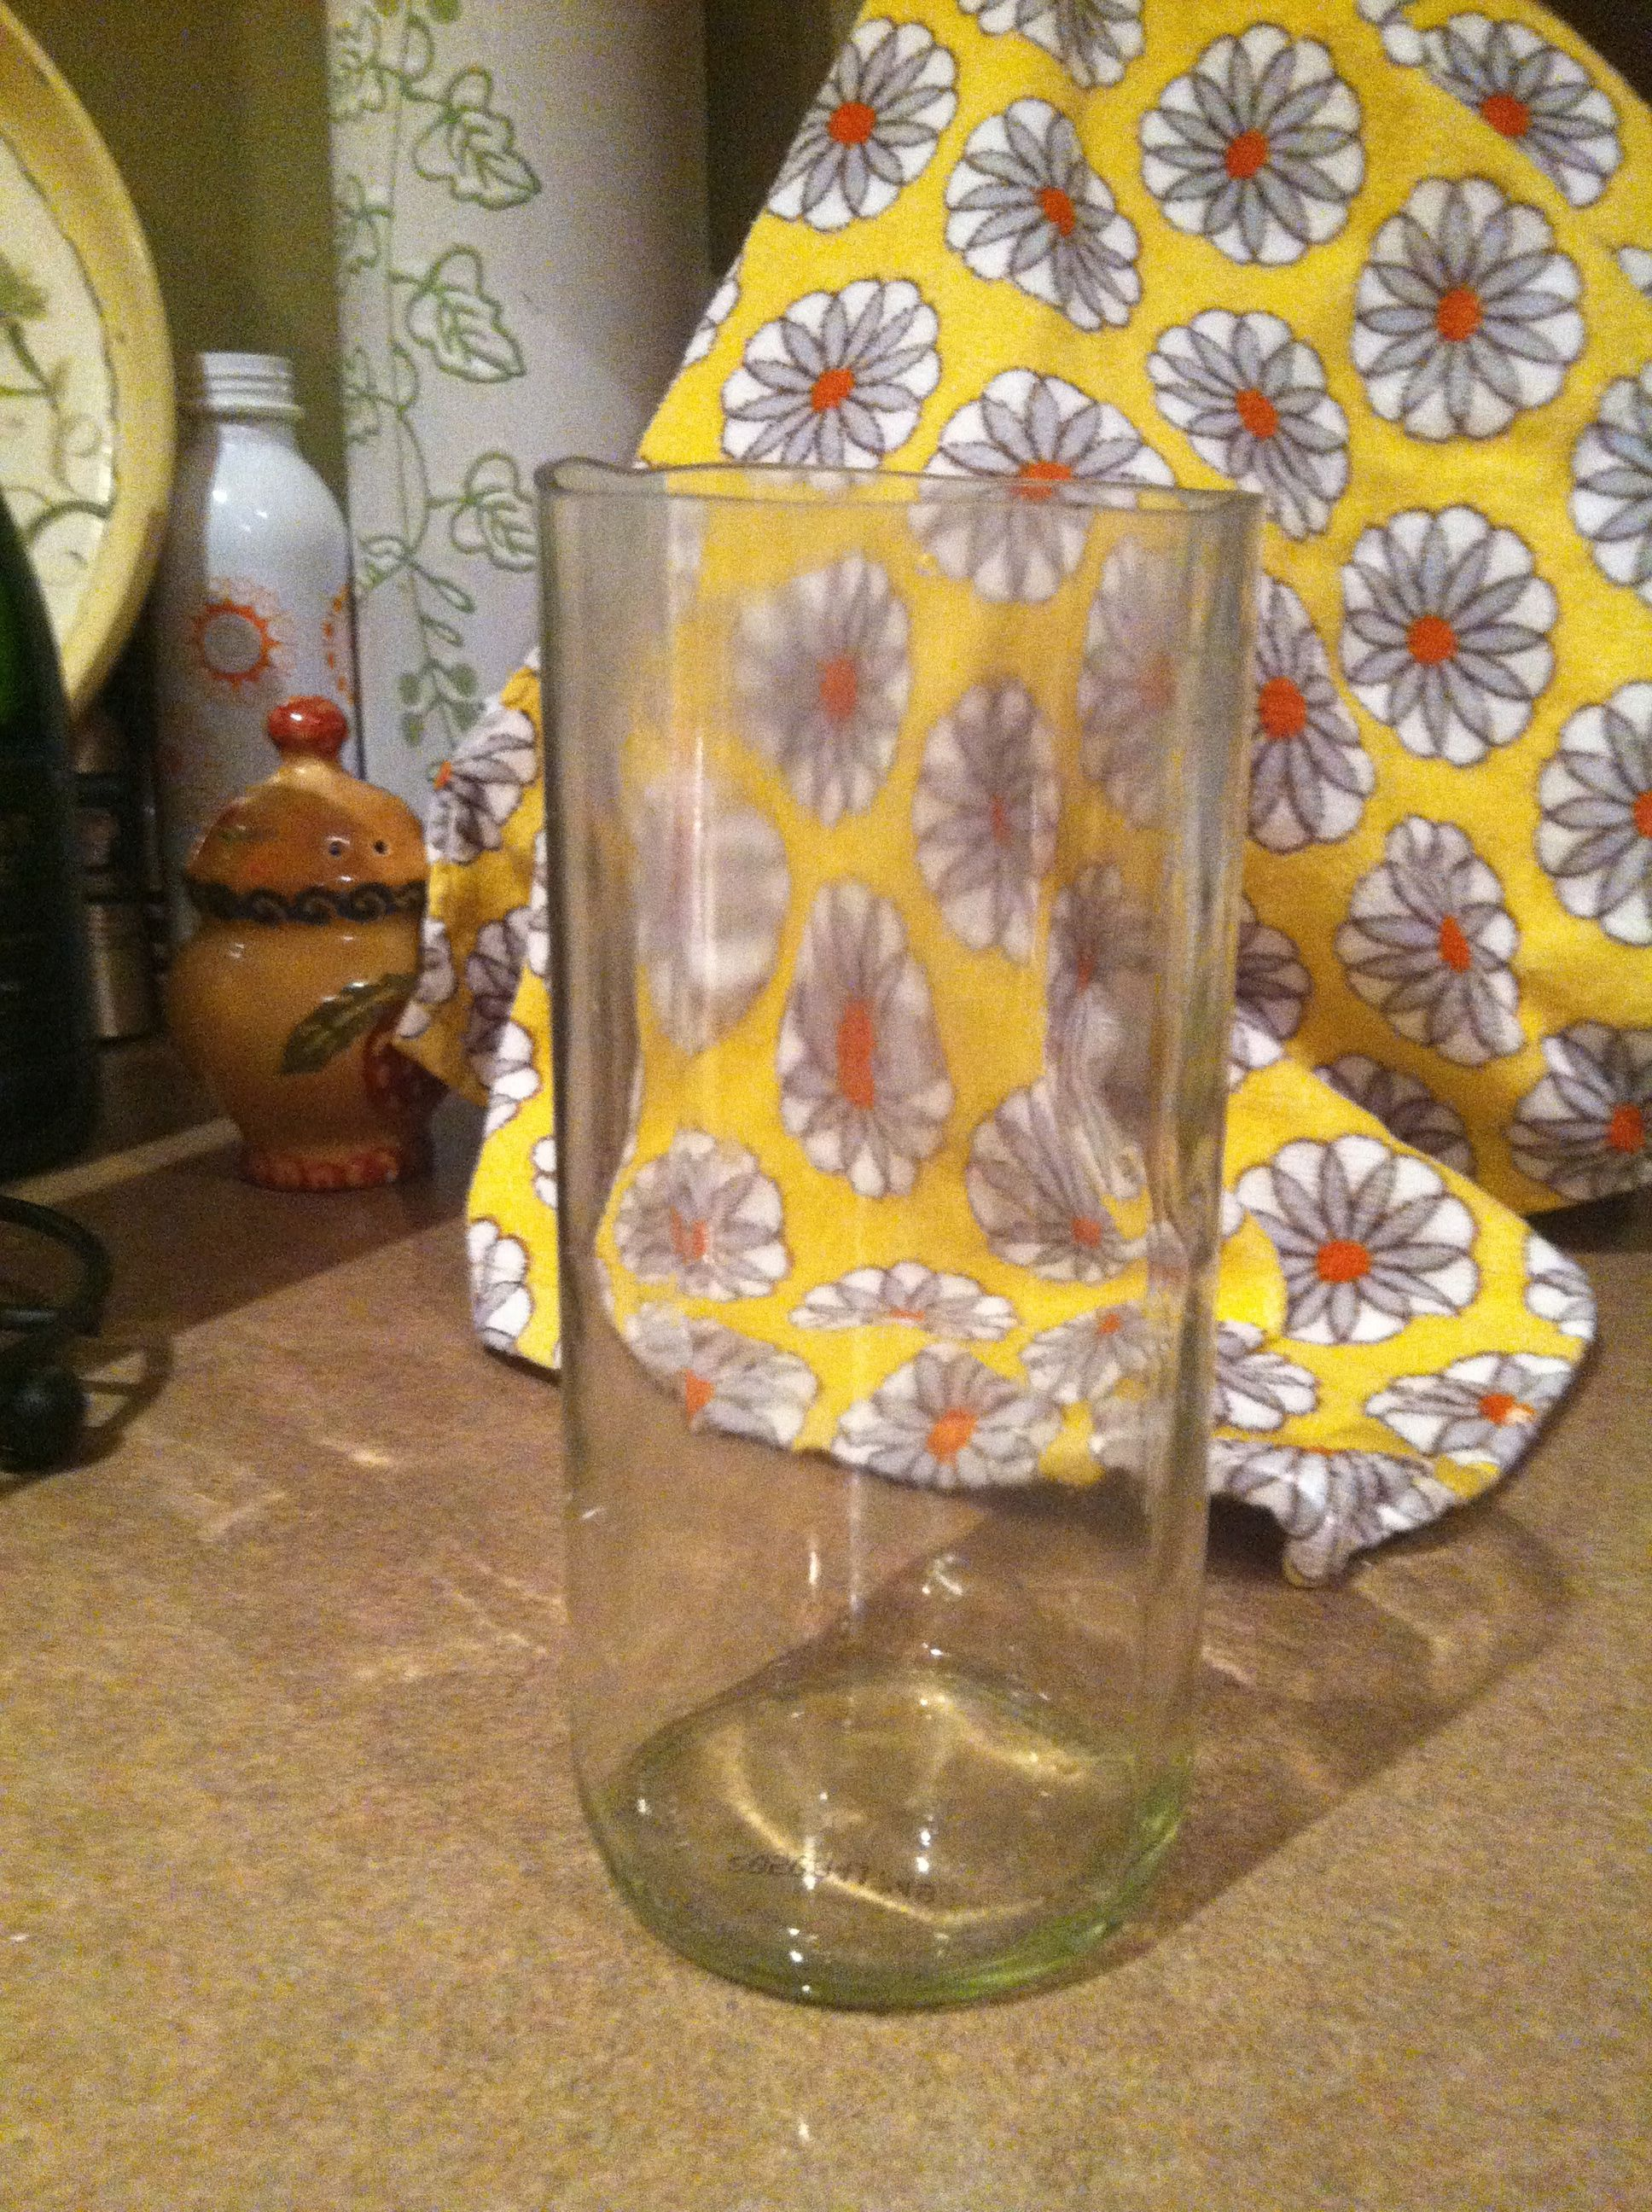 Drinking glass made from a wine bottle